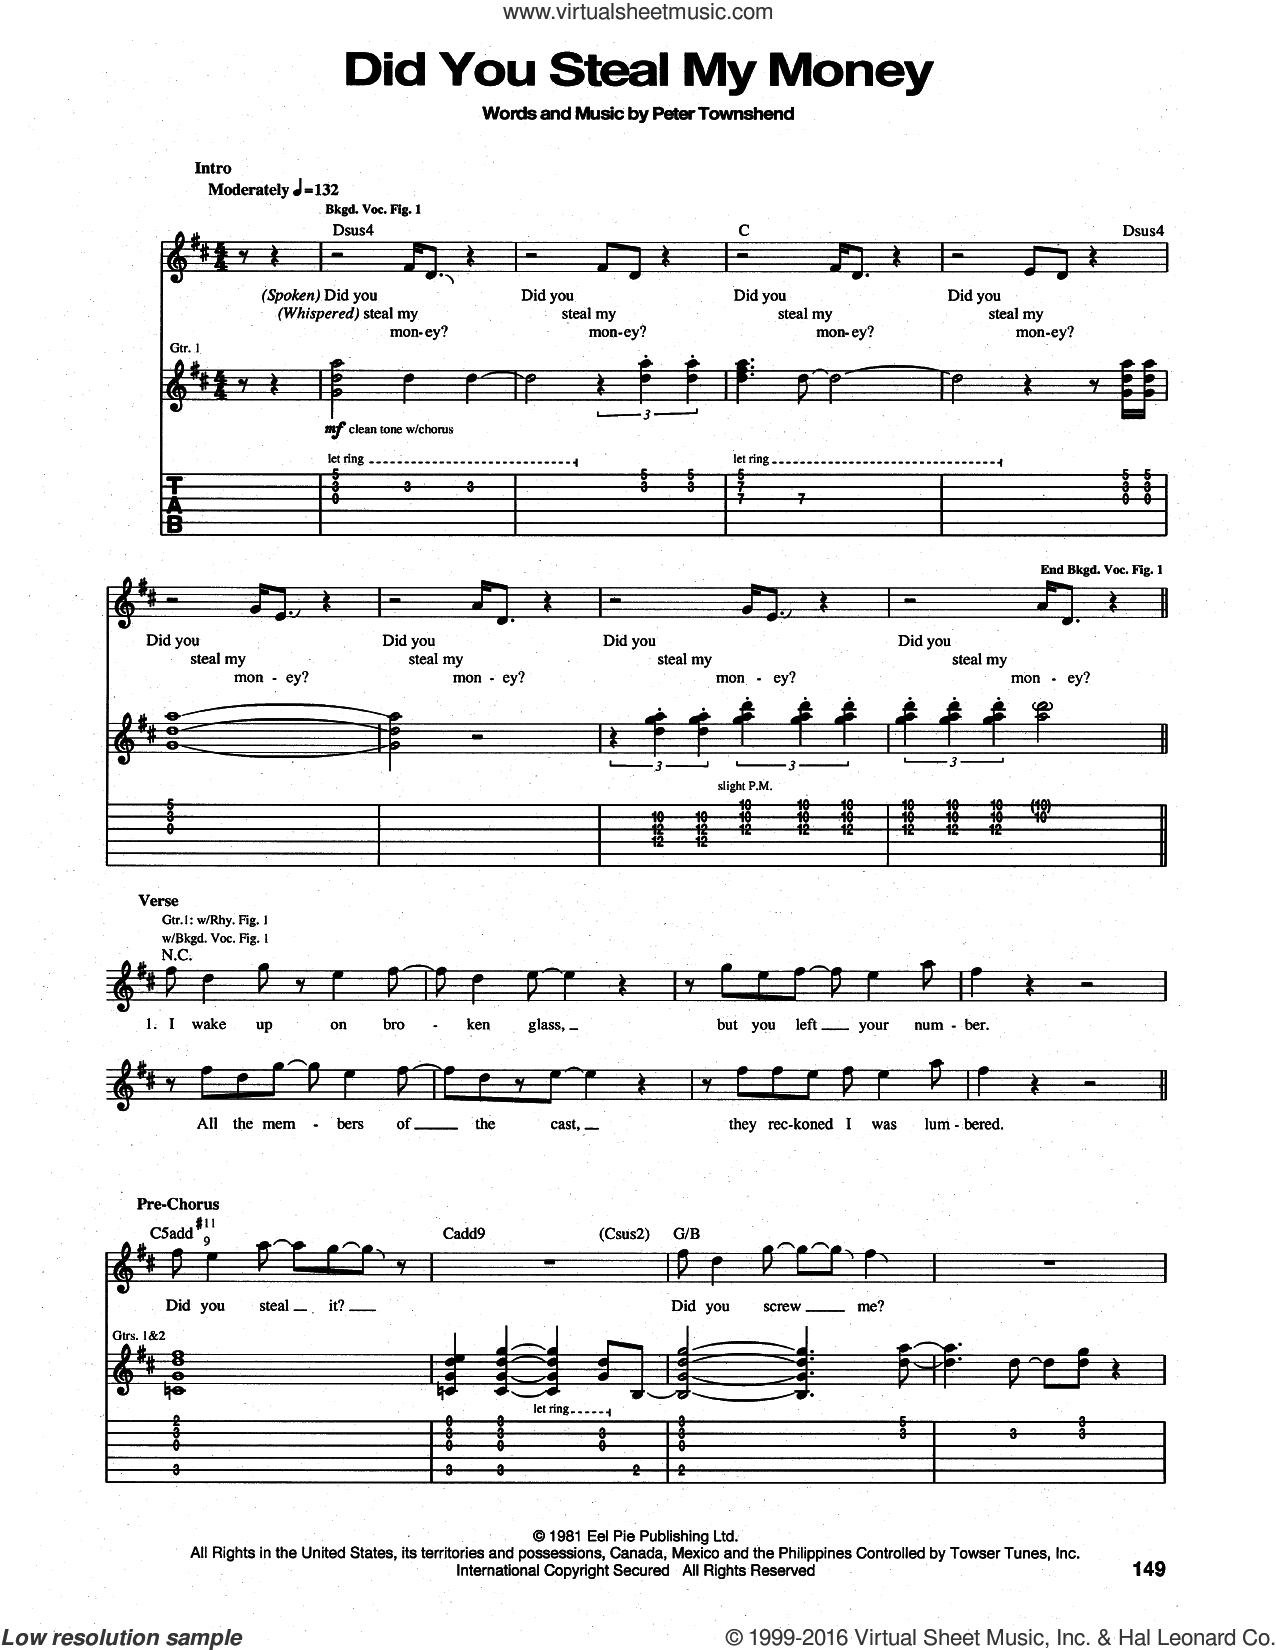 Did You Steal My Money sheet music for guitar (tablature) by The Who and Pete Townshend, intermediate. Score Image Preview.